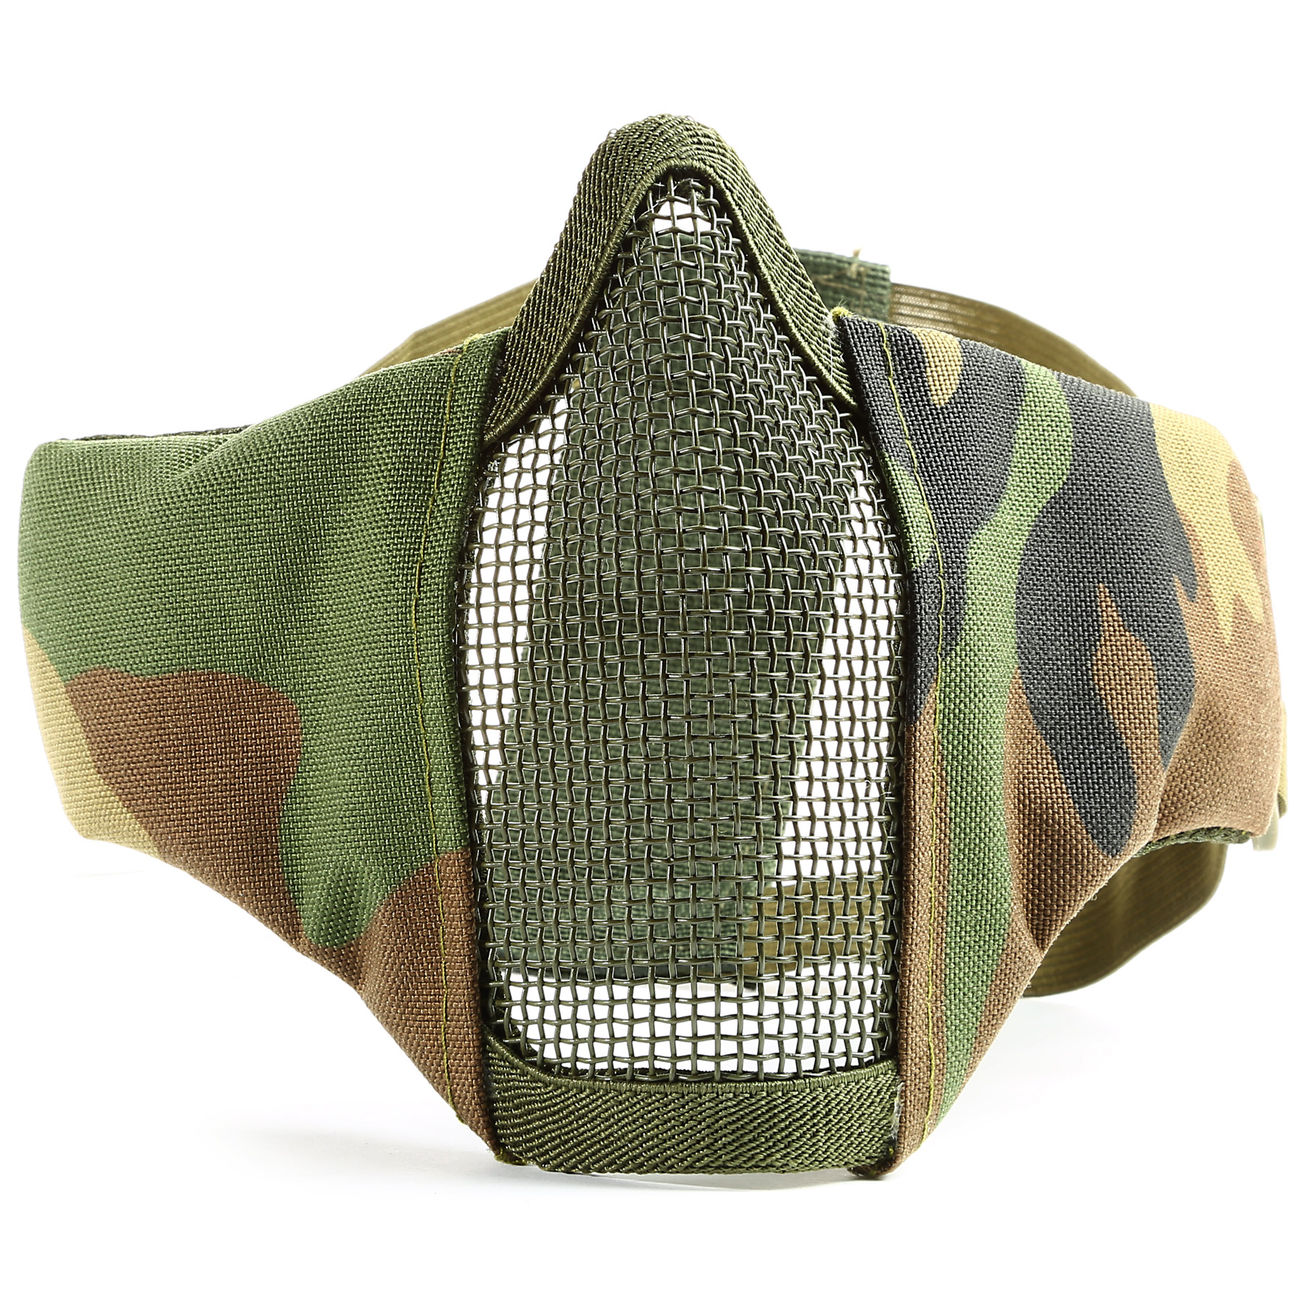 101 INC. Airsoft Gittermaske woodland 3